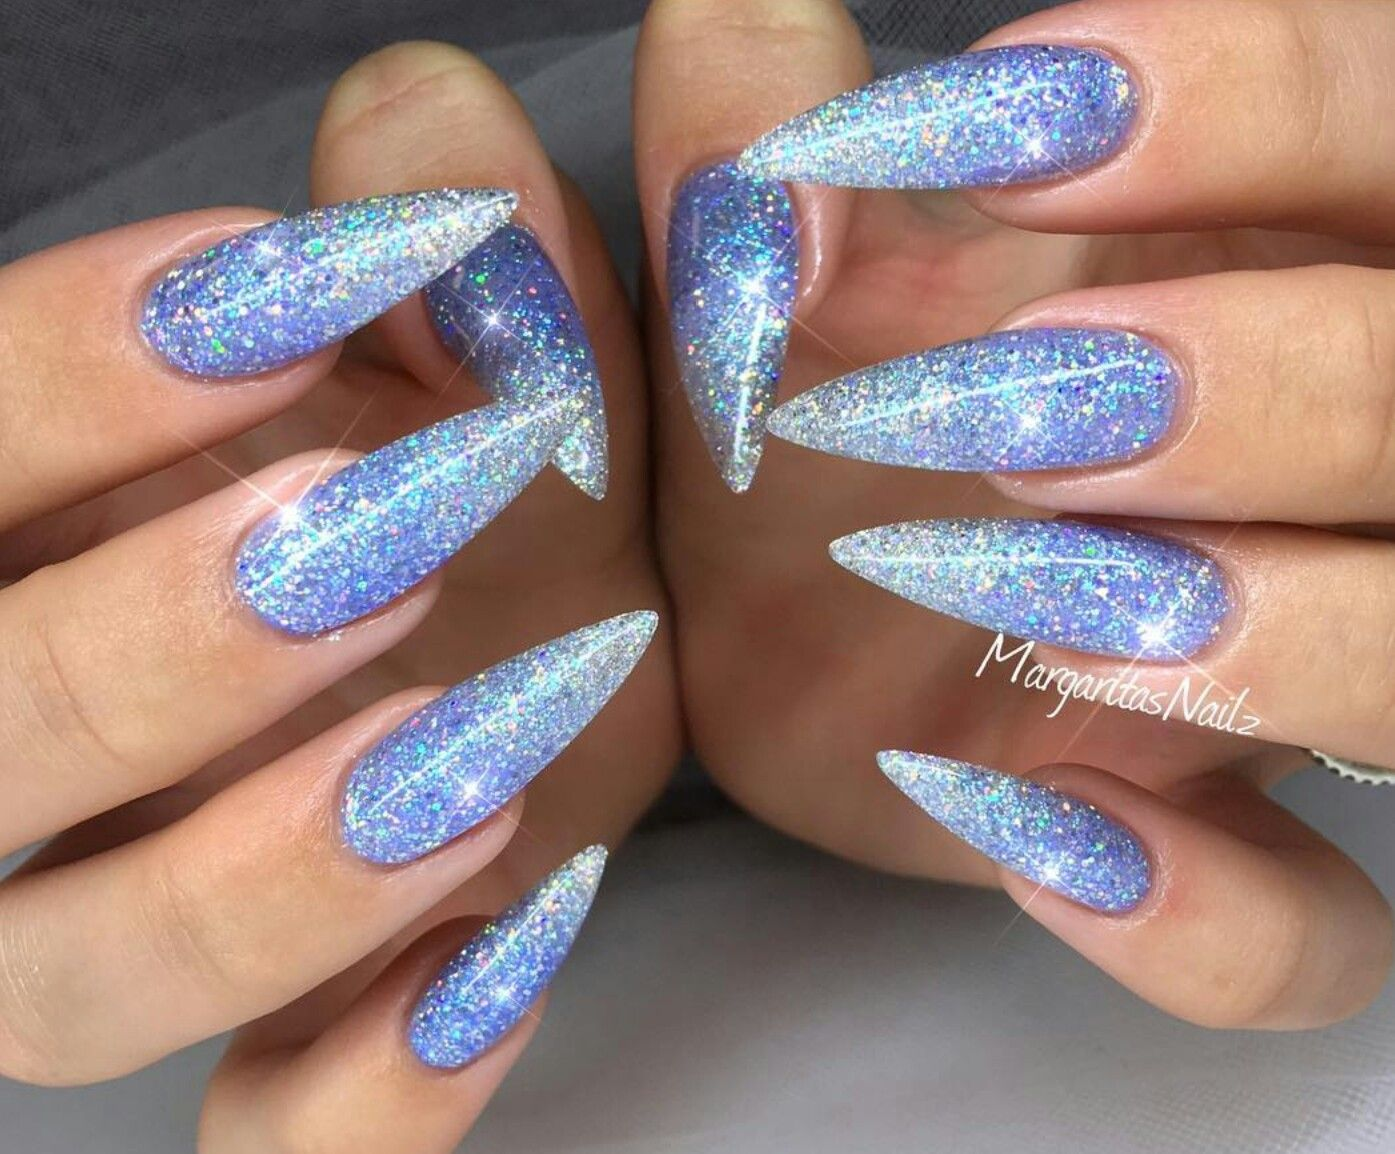 The Color Periwinkle Blue Nails Stiletto Nails Stiletto Nails Designs